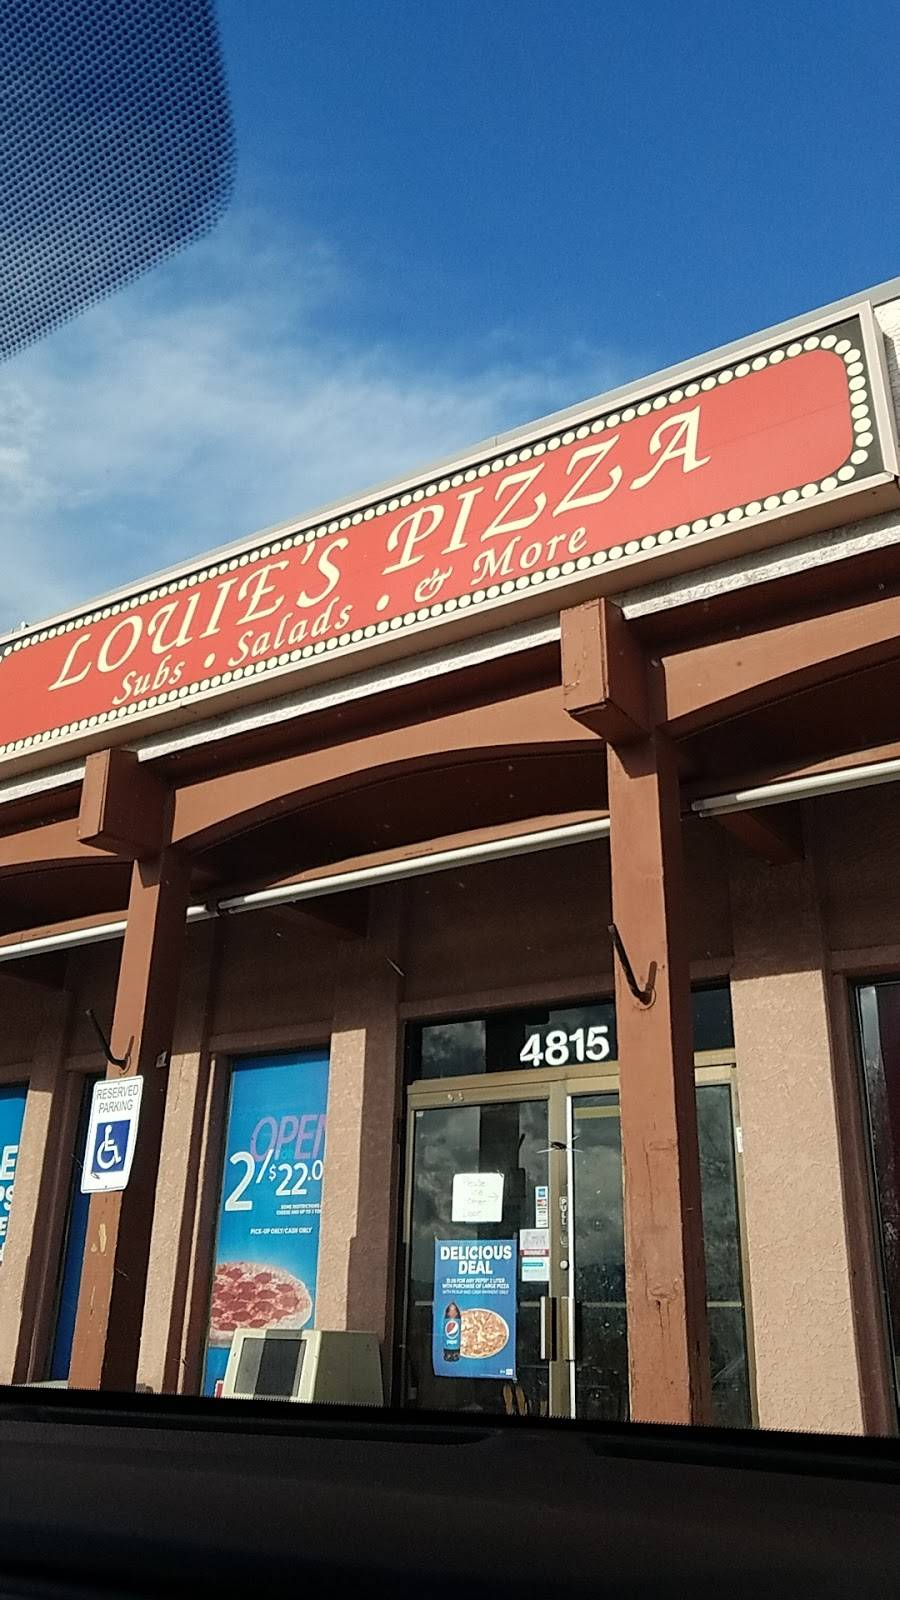 Louies Pizza | meal delivery | 4815 Barnes Rd, Colorado Springs, CO 80917, USA | 7195915241 OR +1 719-591-5241